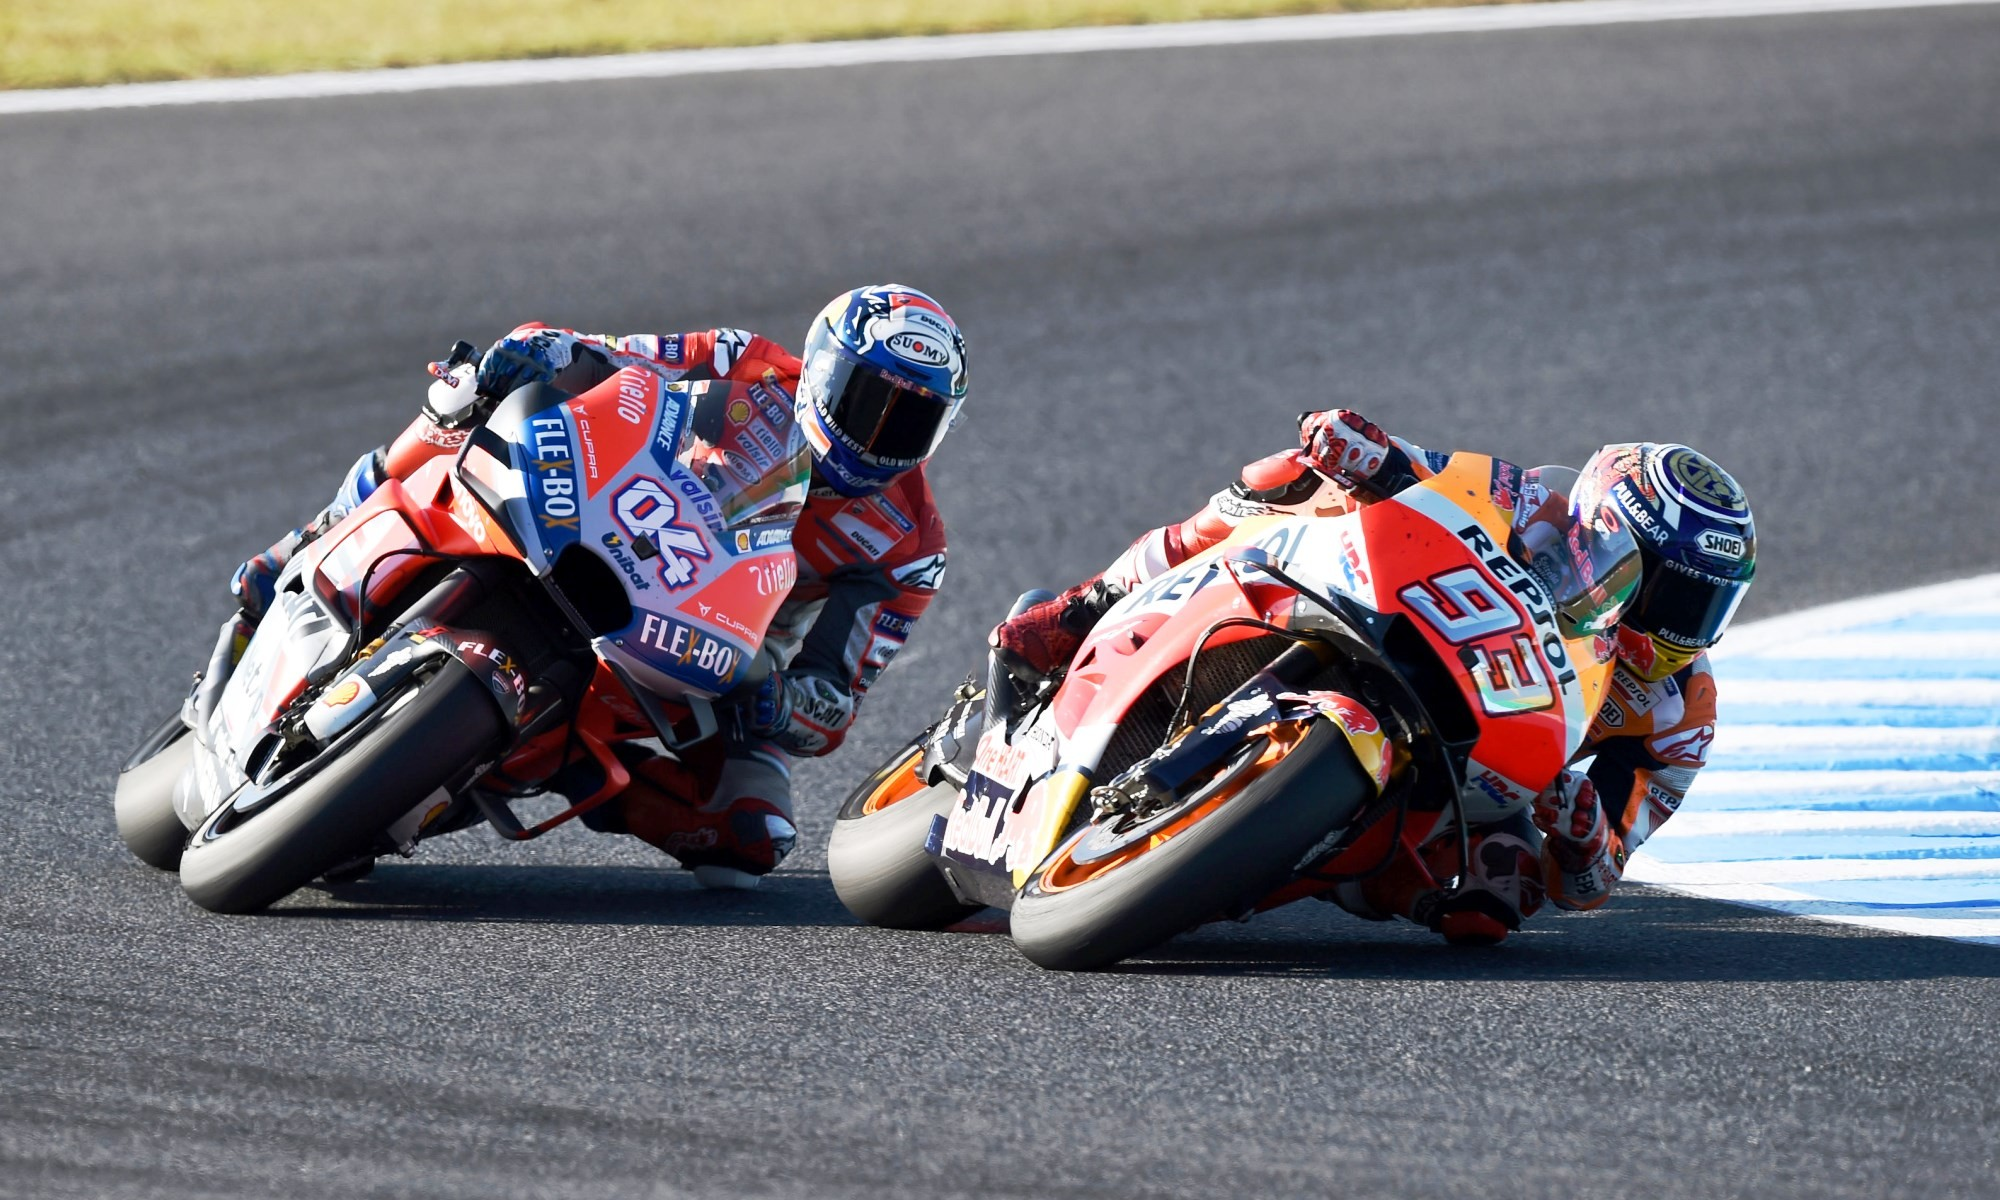 Dovi and Marquez battled hard as usual